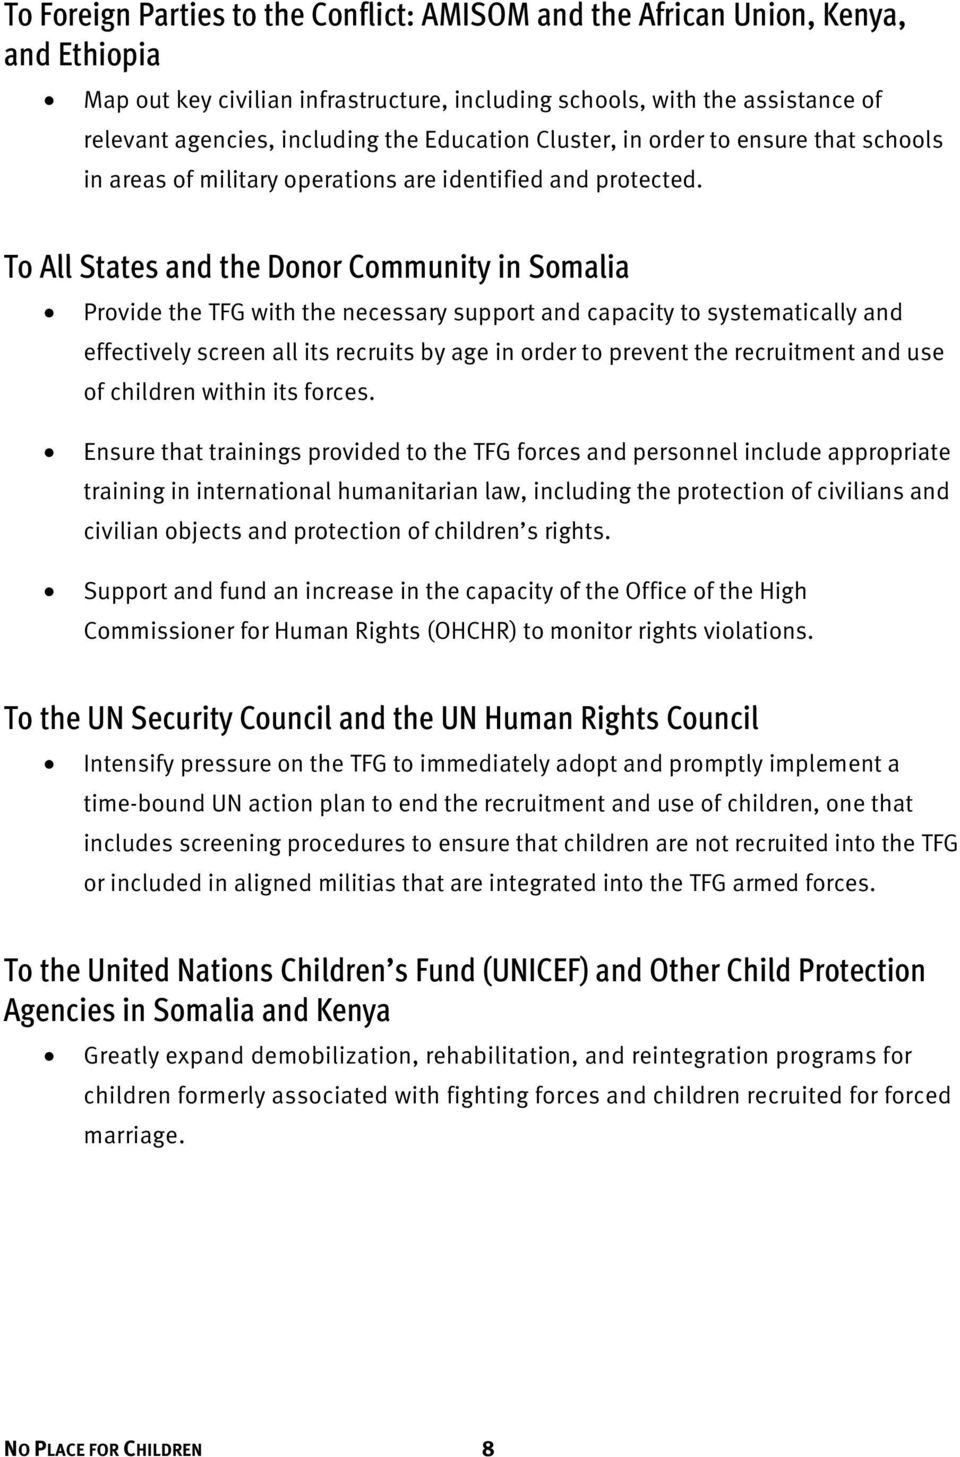 To All States and the Donor Community in Somalia Provide the TFG with the necessary support and capacity to systematically and effectively screen all its recruits by age in order to prevent the